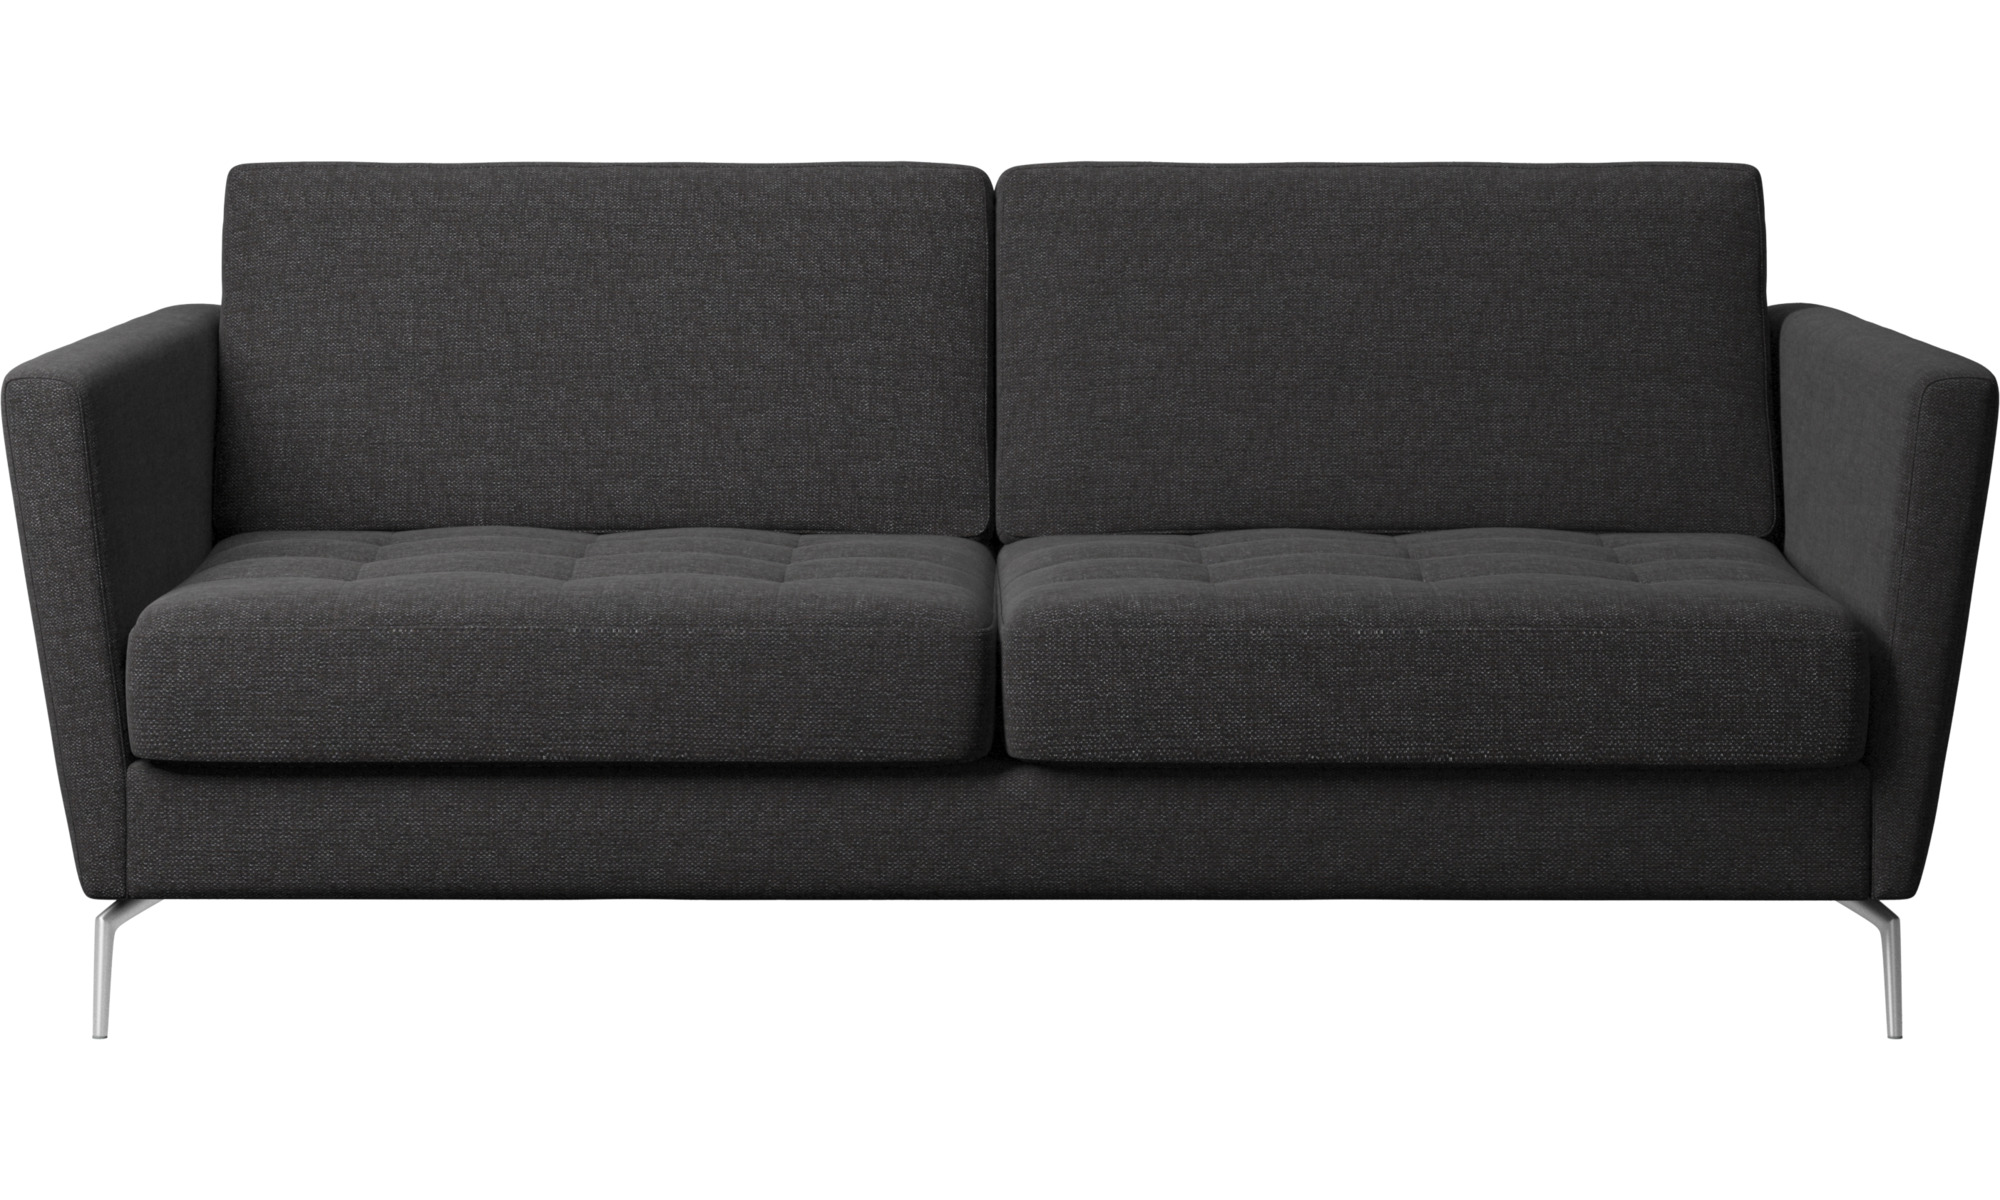 boconcept sleeper sofa review small sectional free shipping beds osaka bed